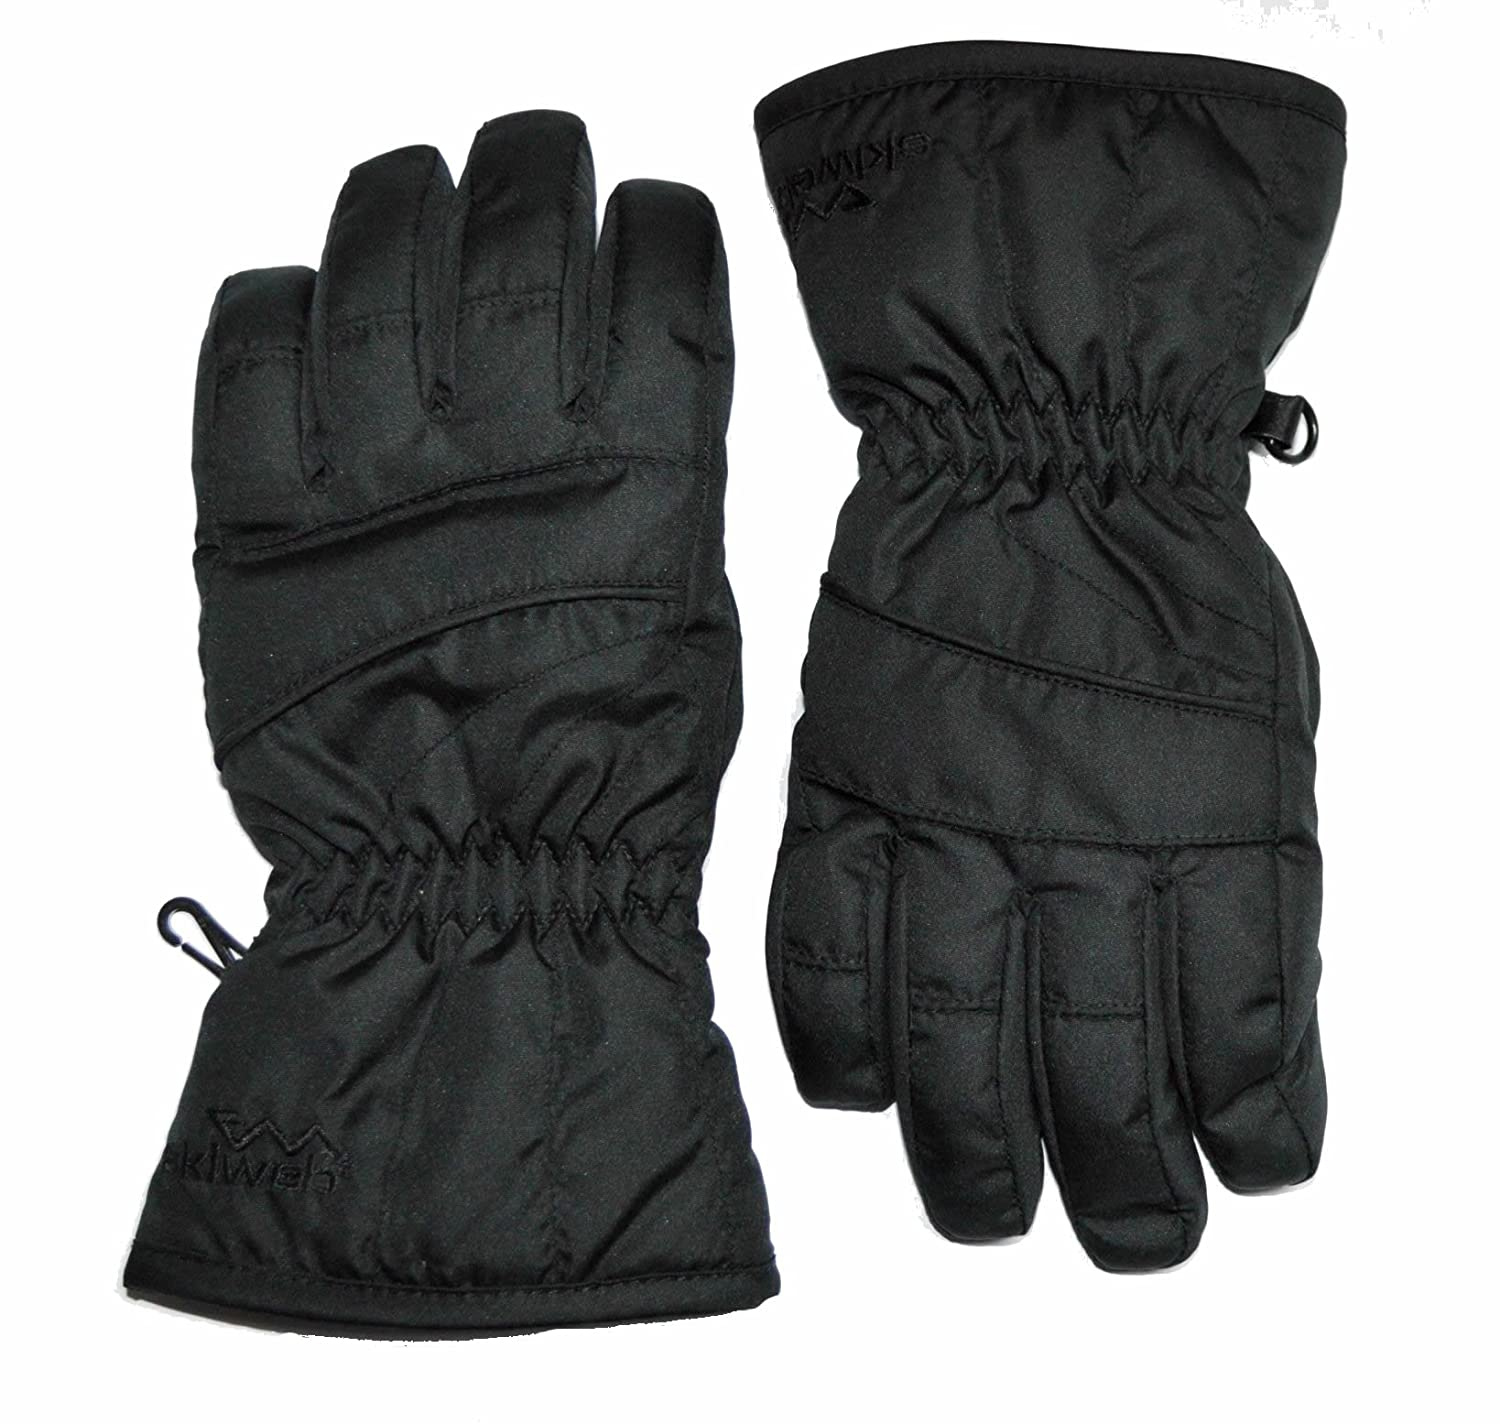 Kids Ski Gloves - Water Resistant With Warm Tricot Lining Age 4-11 Skiweb